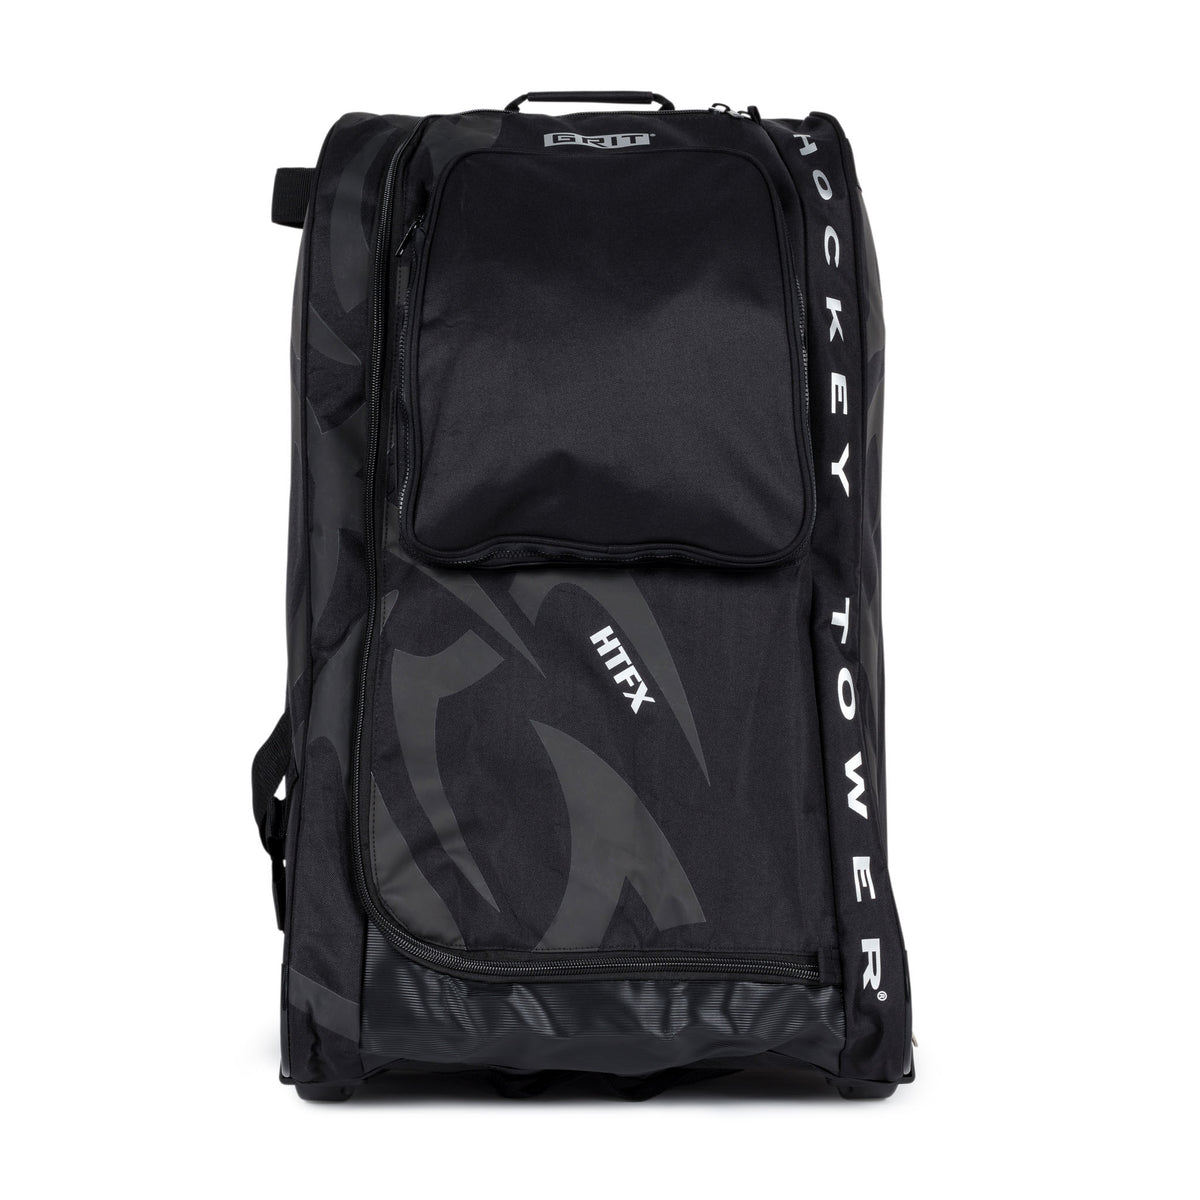 1576d3ed59f2 Grit HTFX Hockey Tower Junior Bag – The Hockey Shop Source For Sports